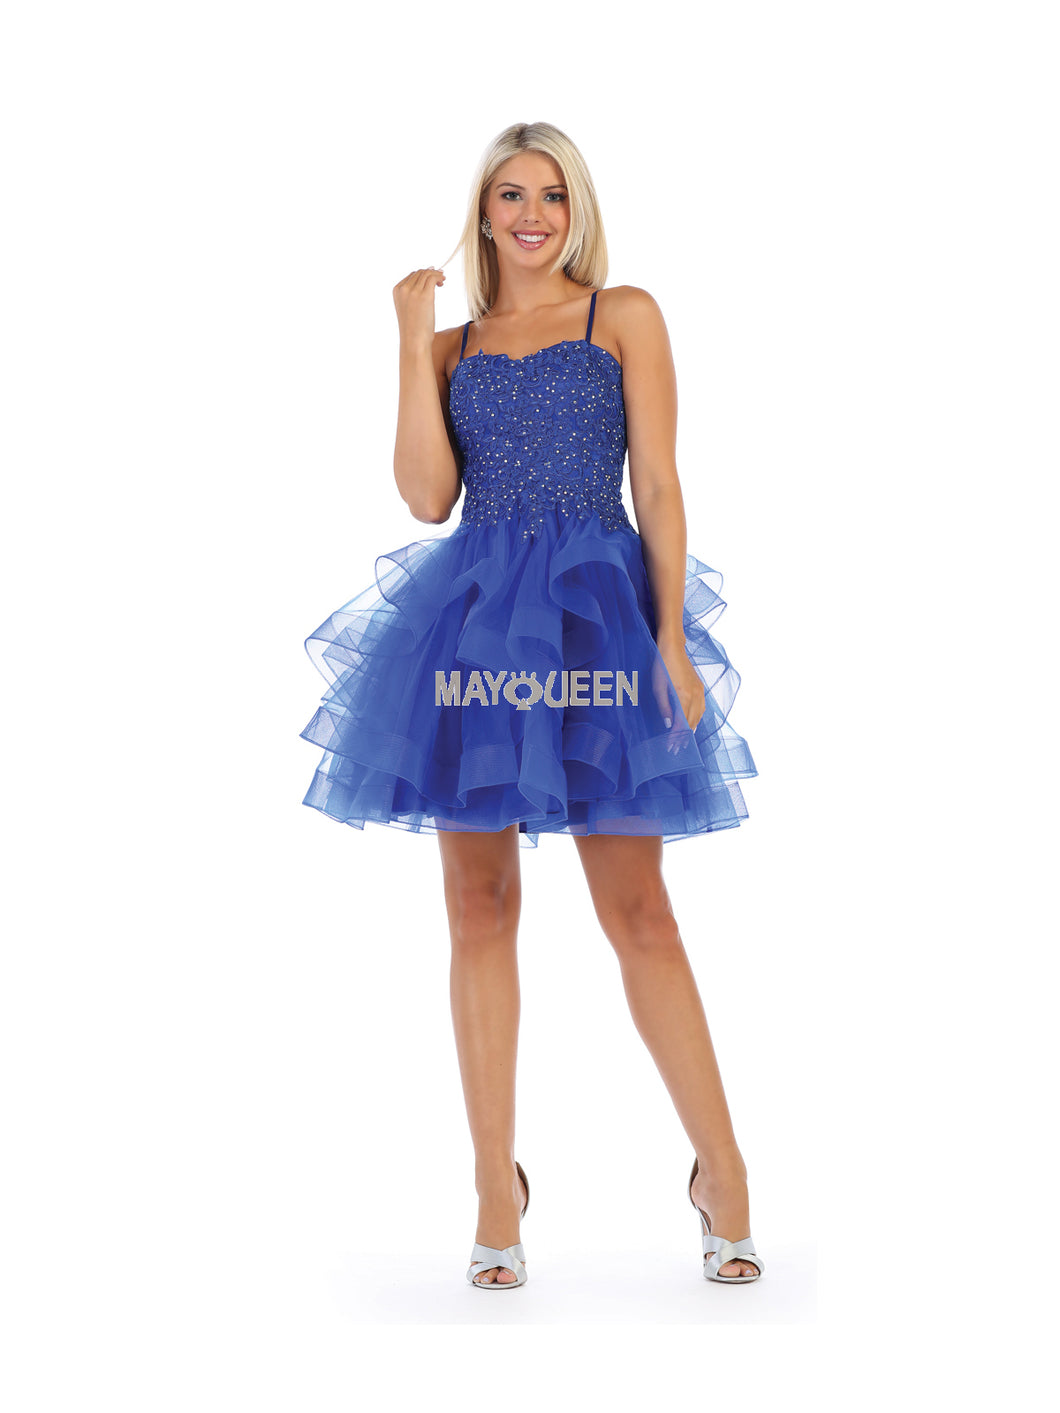 Mayqueen Size Chart E MQ 7720 - Spaghetti Strap Sweetheart Neck with Open Corset Back &  Full Ruffled Skirt - Diggz Prom